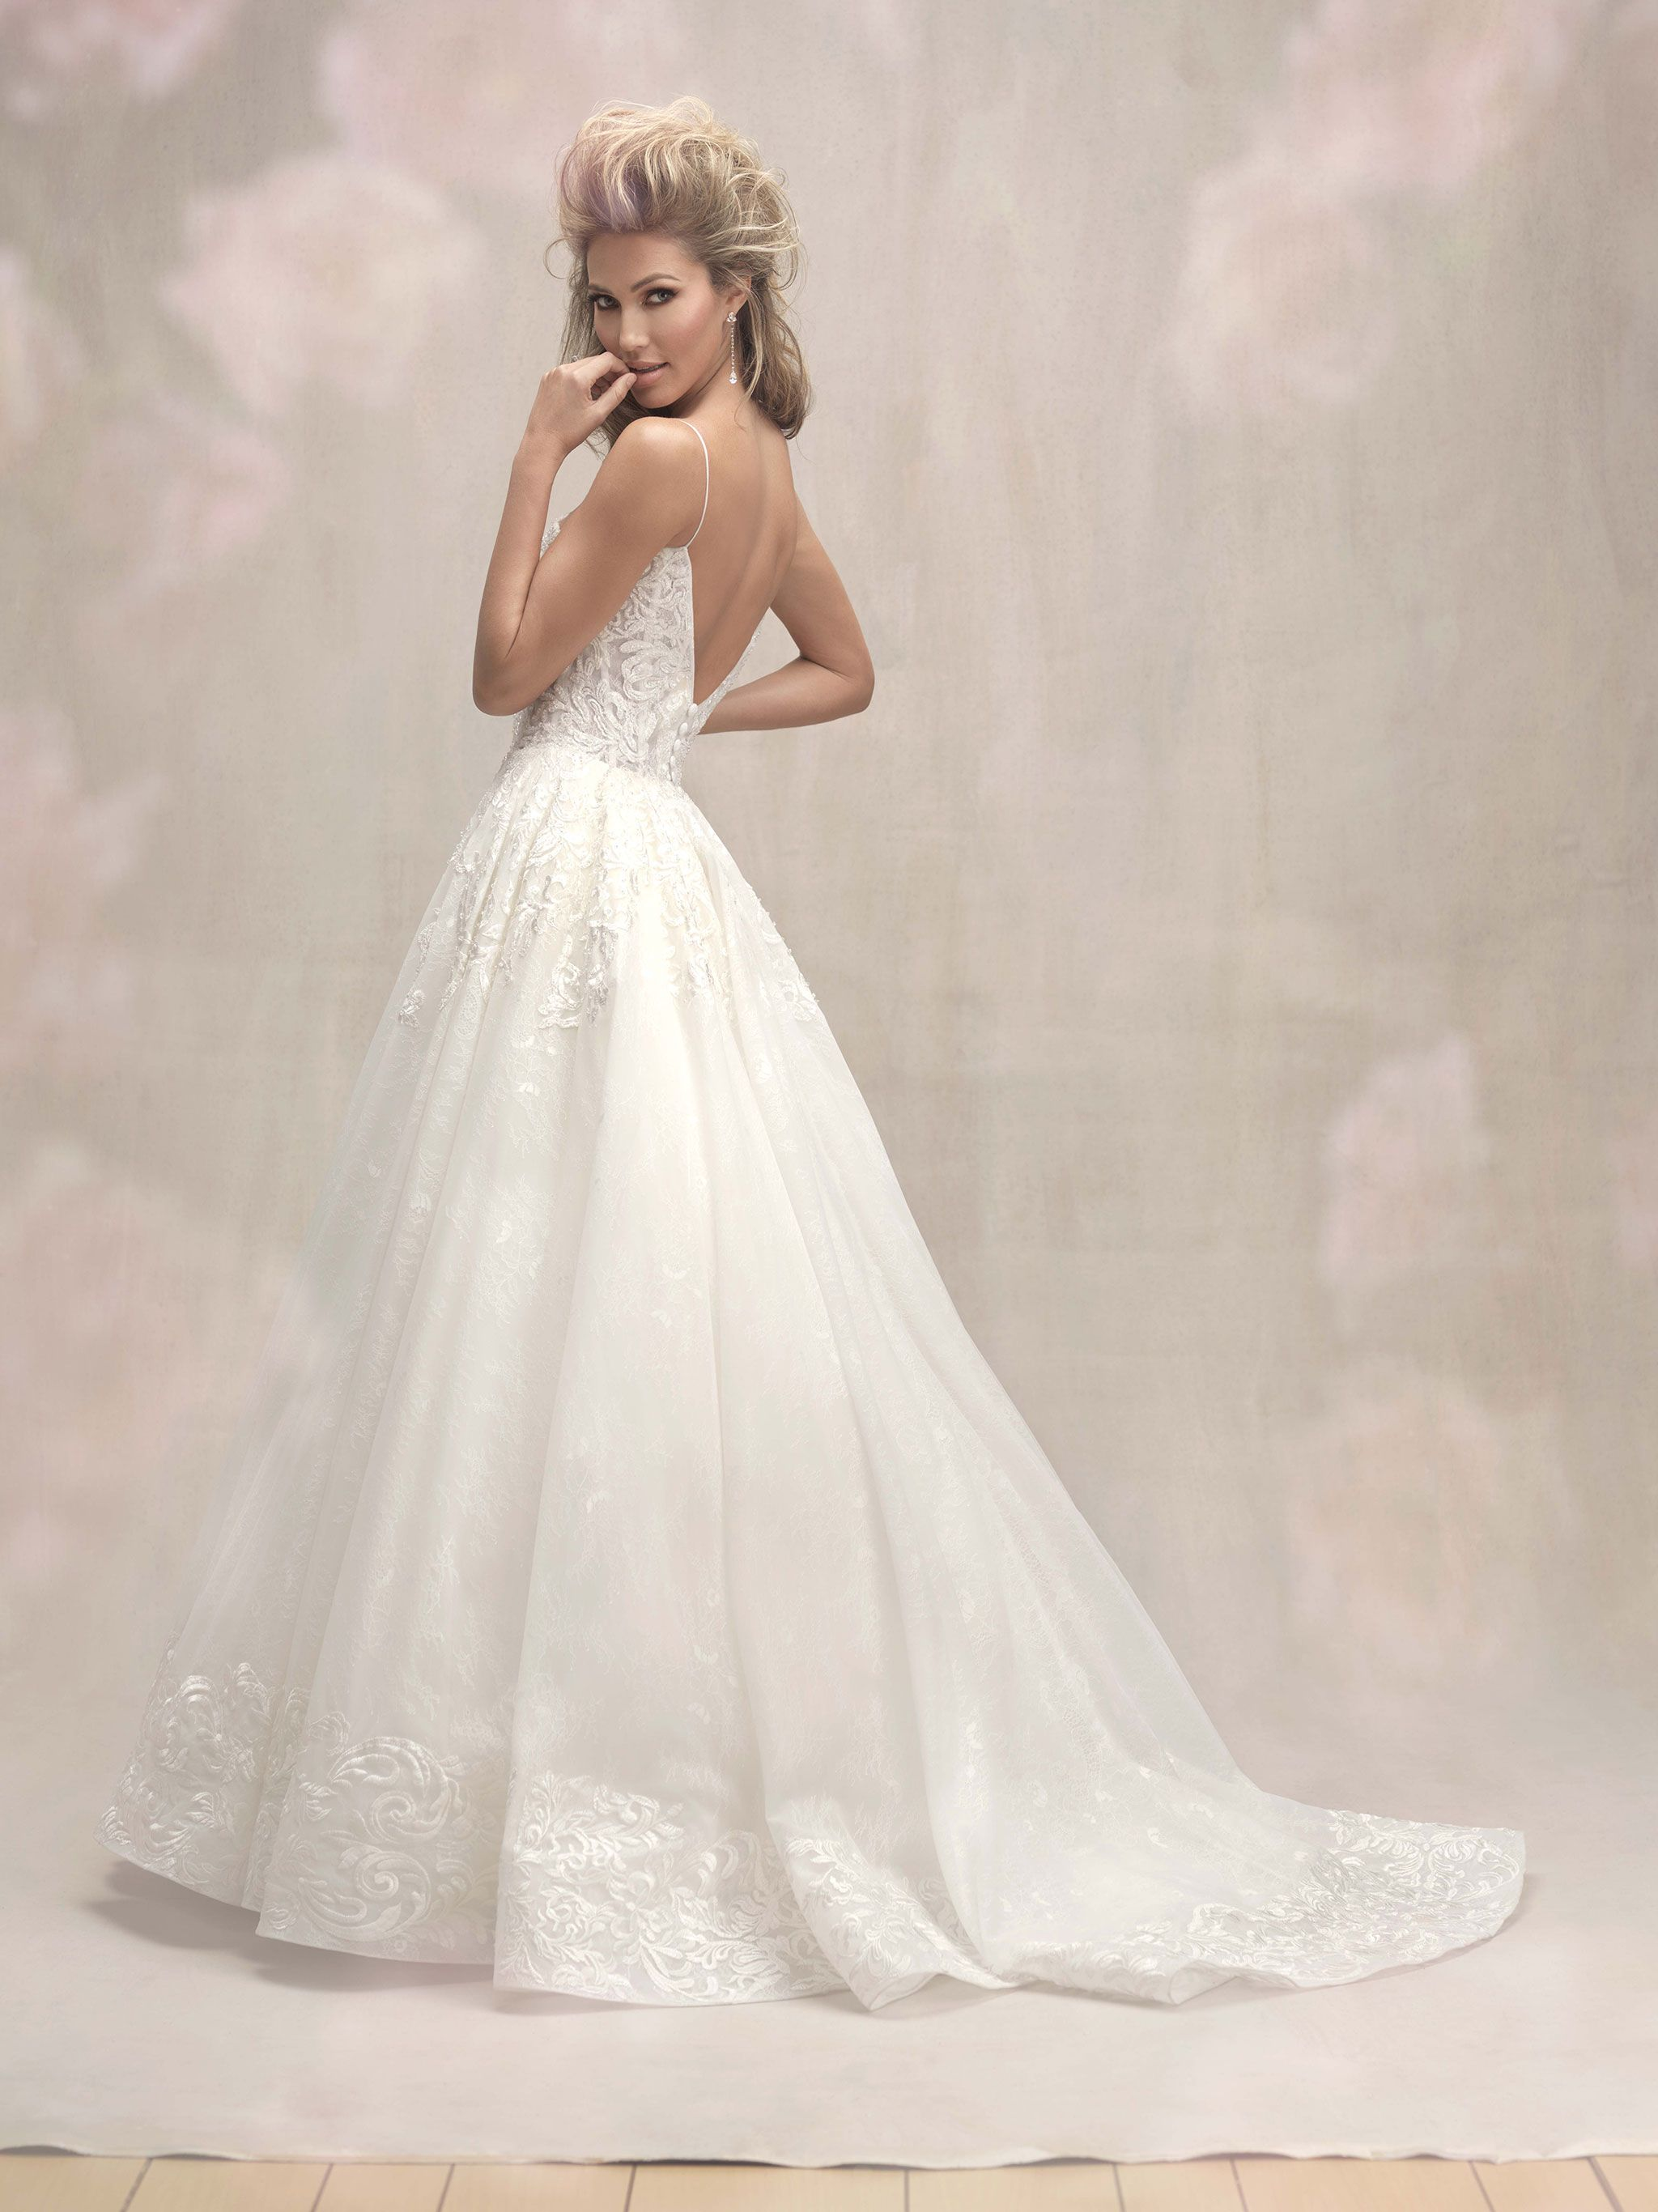 Allure Bridal Couture Style C454 Featuring Delicate Straps And A Simple Silhouette This Gown Is Perfection